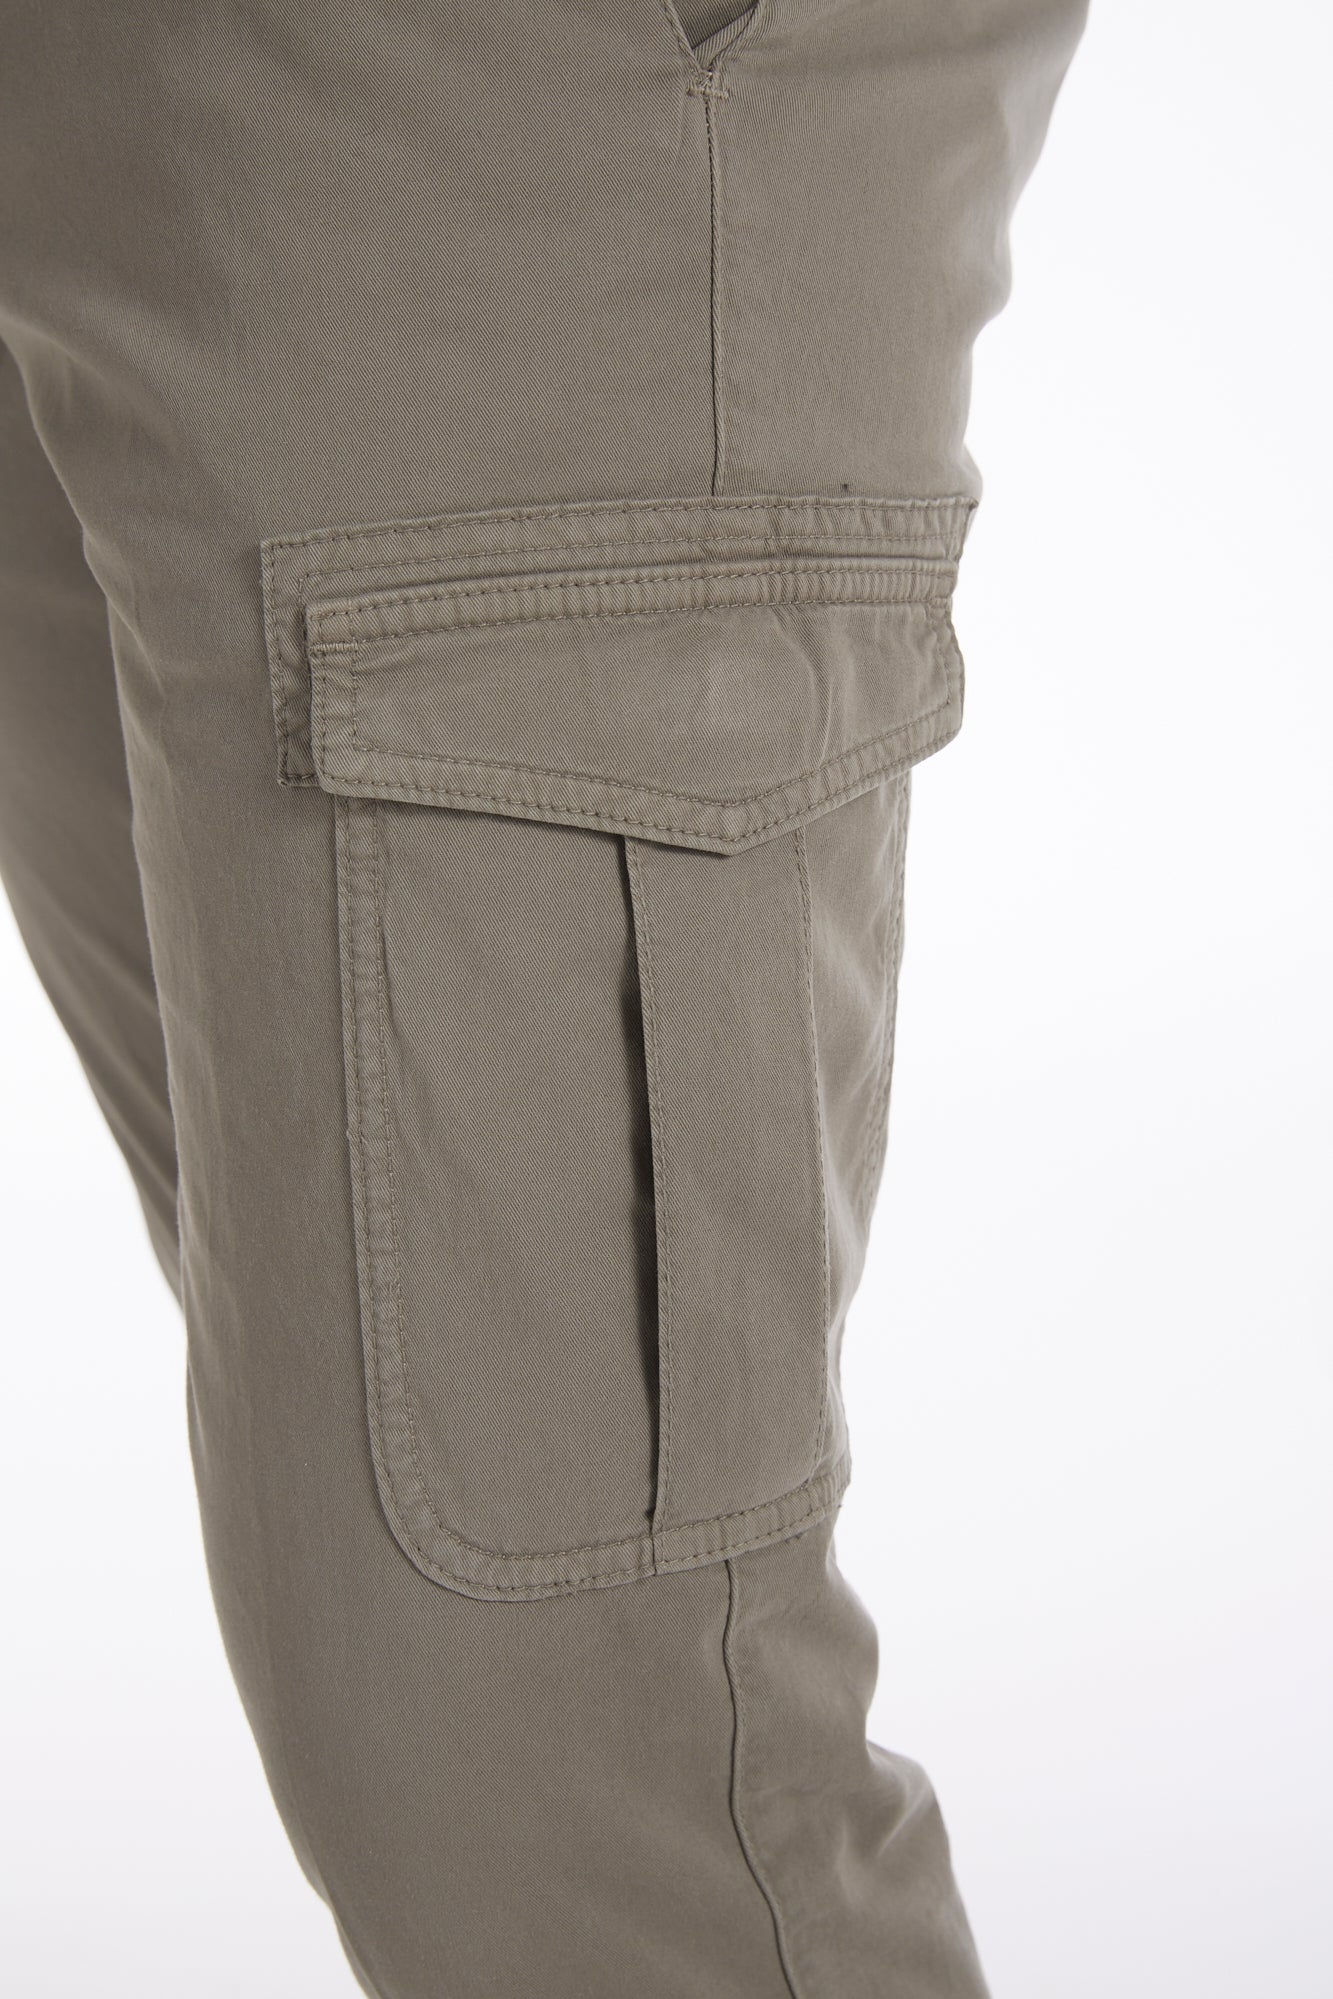 Eleventy Tan Cotton Stretch Cargo Pants - Pants - Eleventy - LALONDE's